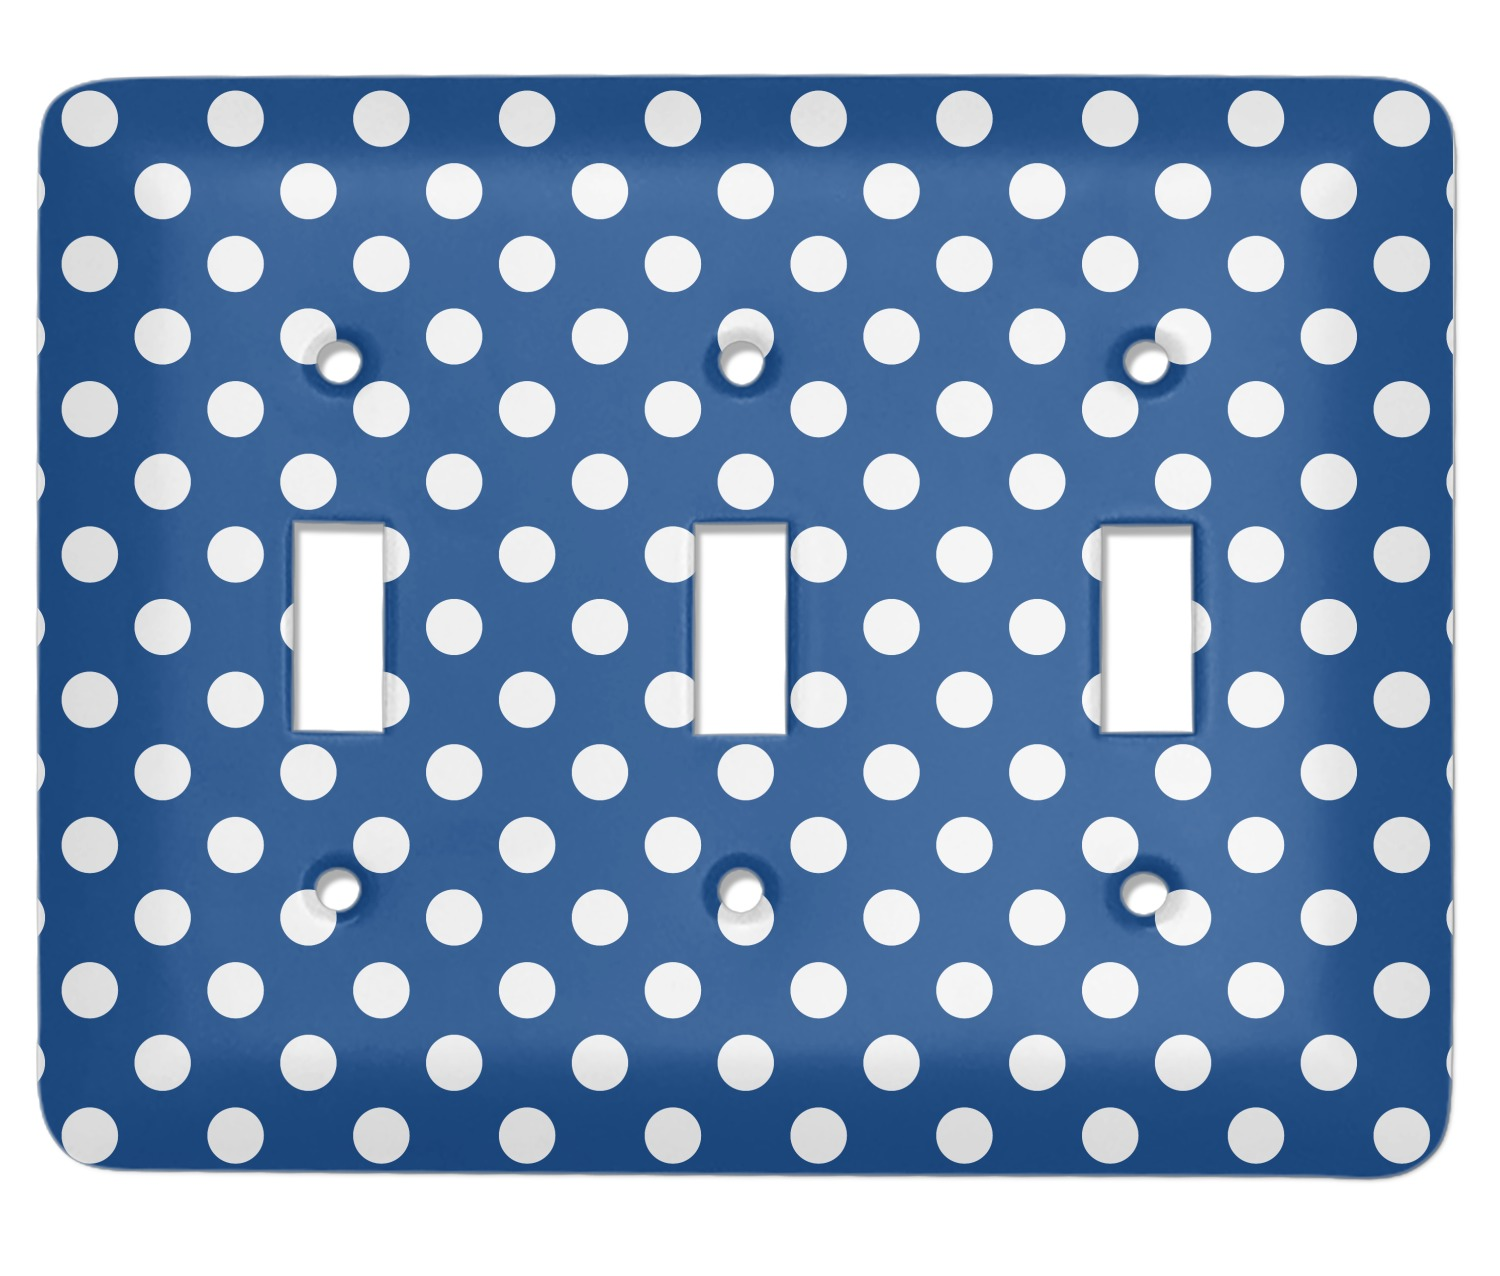 Polka Dots Light Switch Cover 3 Toggle Plate Personalized